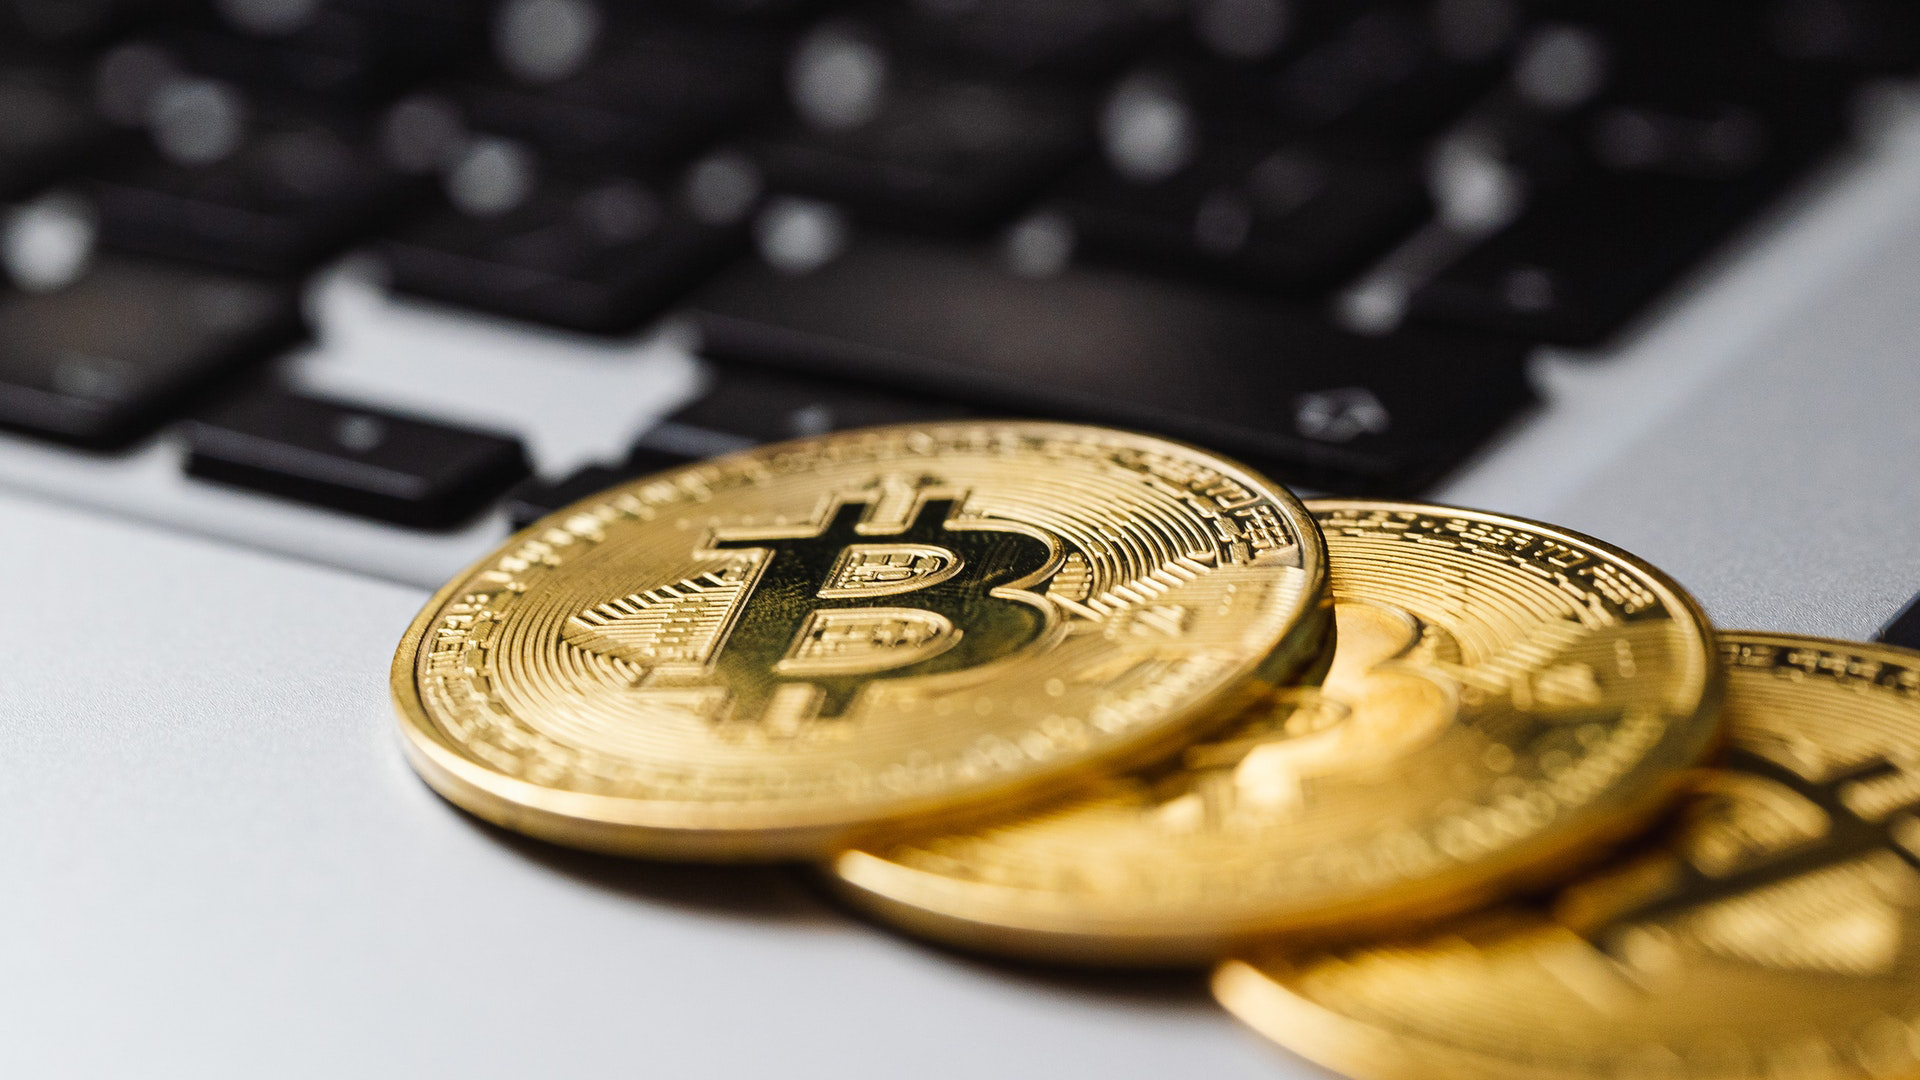 Reasons Why Bitcoin Price Hit All-Time High